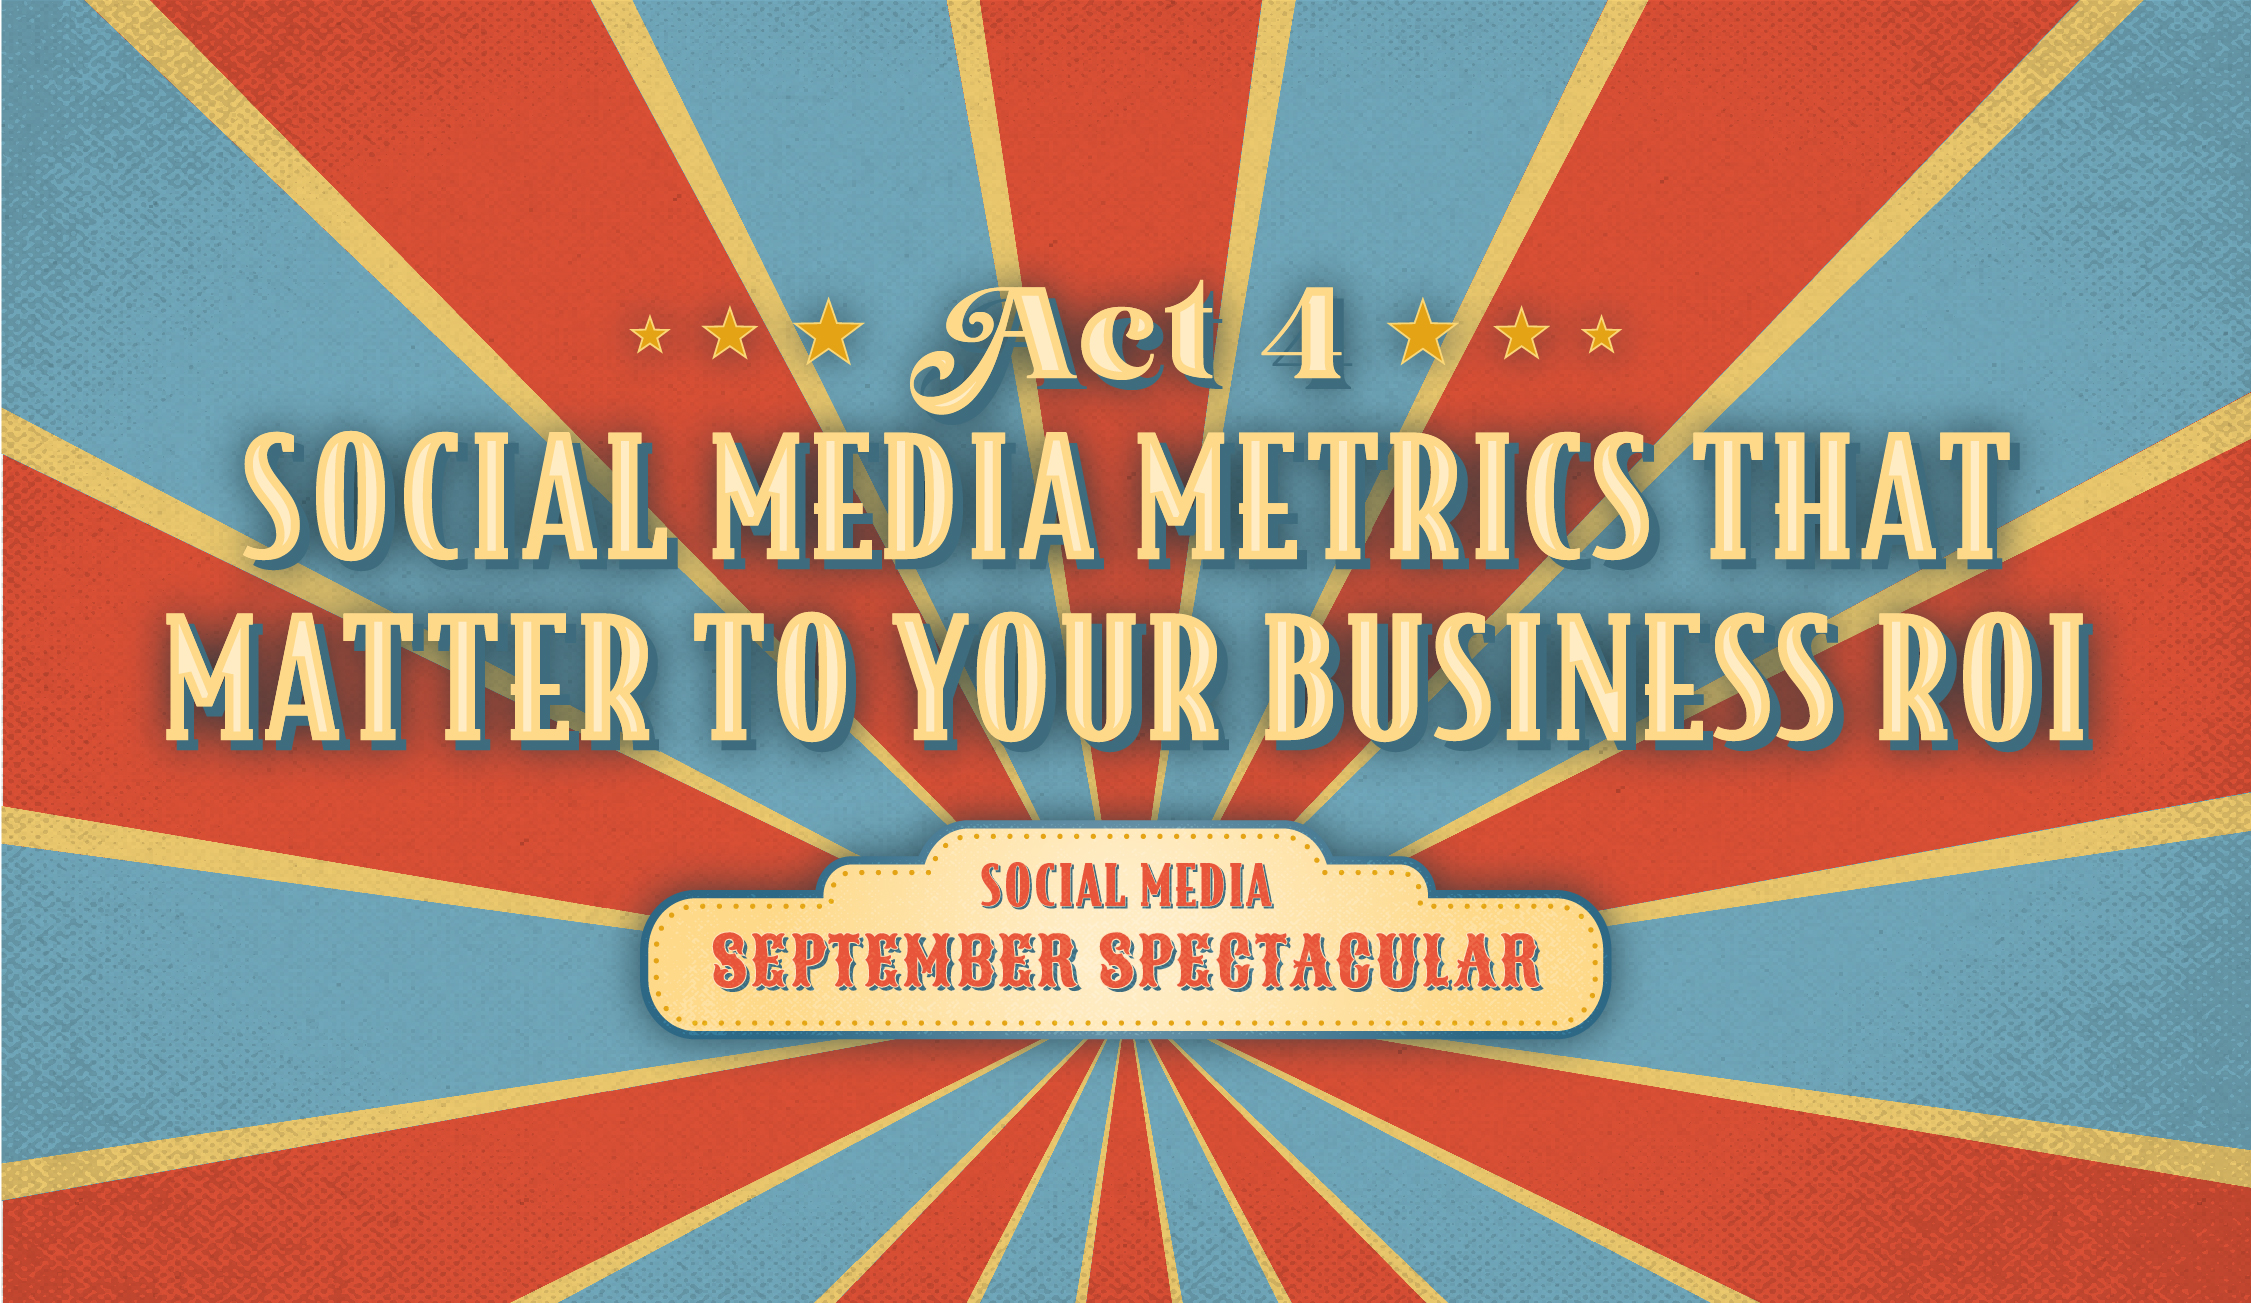 Act 4: Social Media Metrics that Matter to Your Business ROI